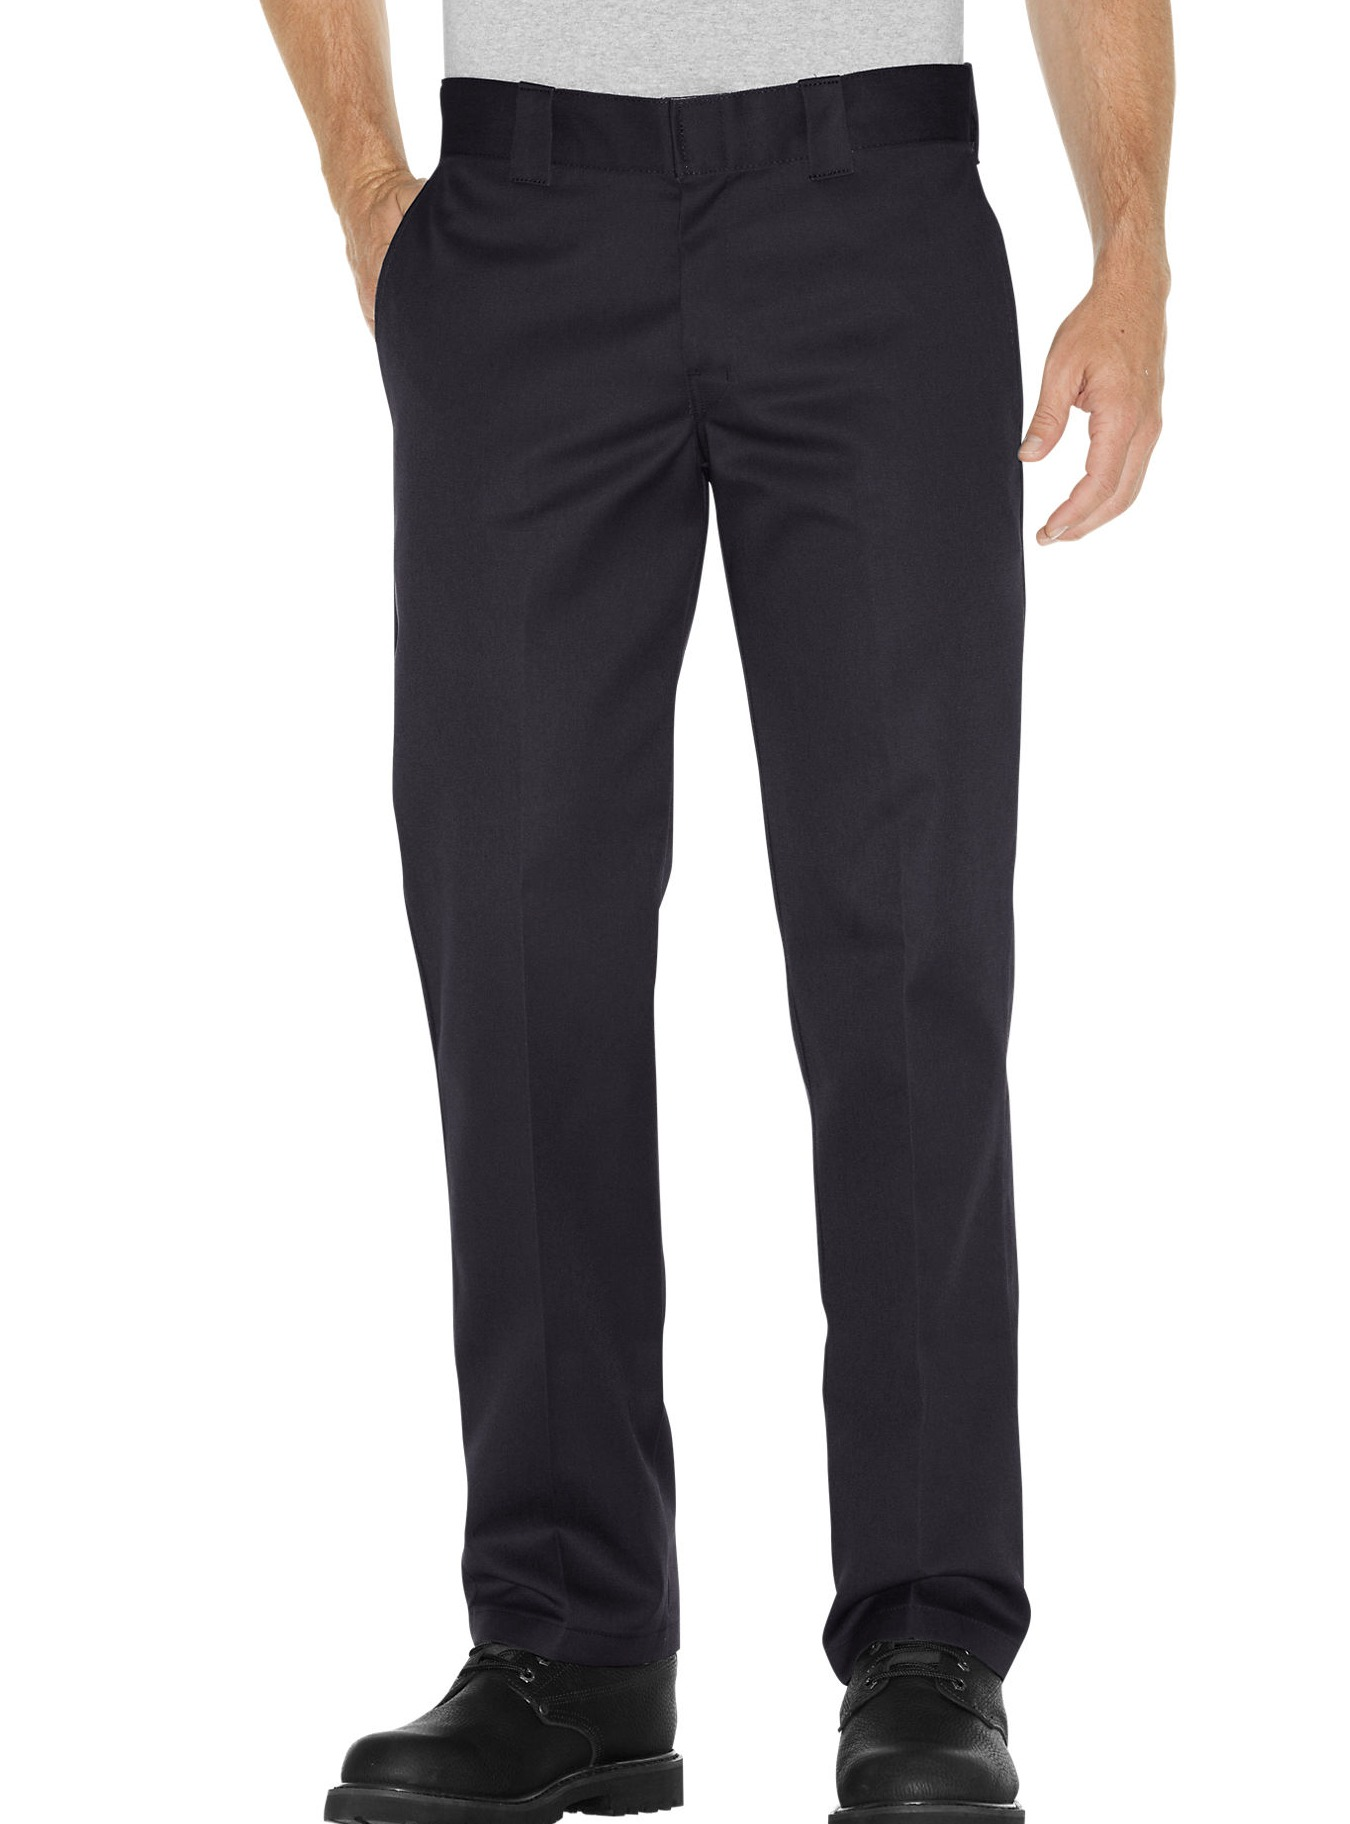 Dickies NEW Deep Black Men's Size 34x32 Button-Front Casual Pants